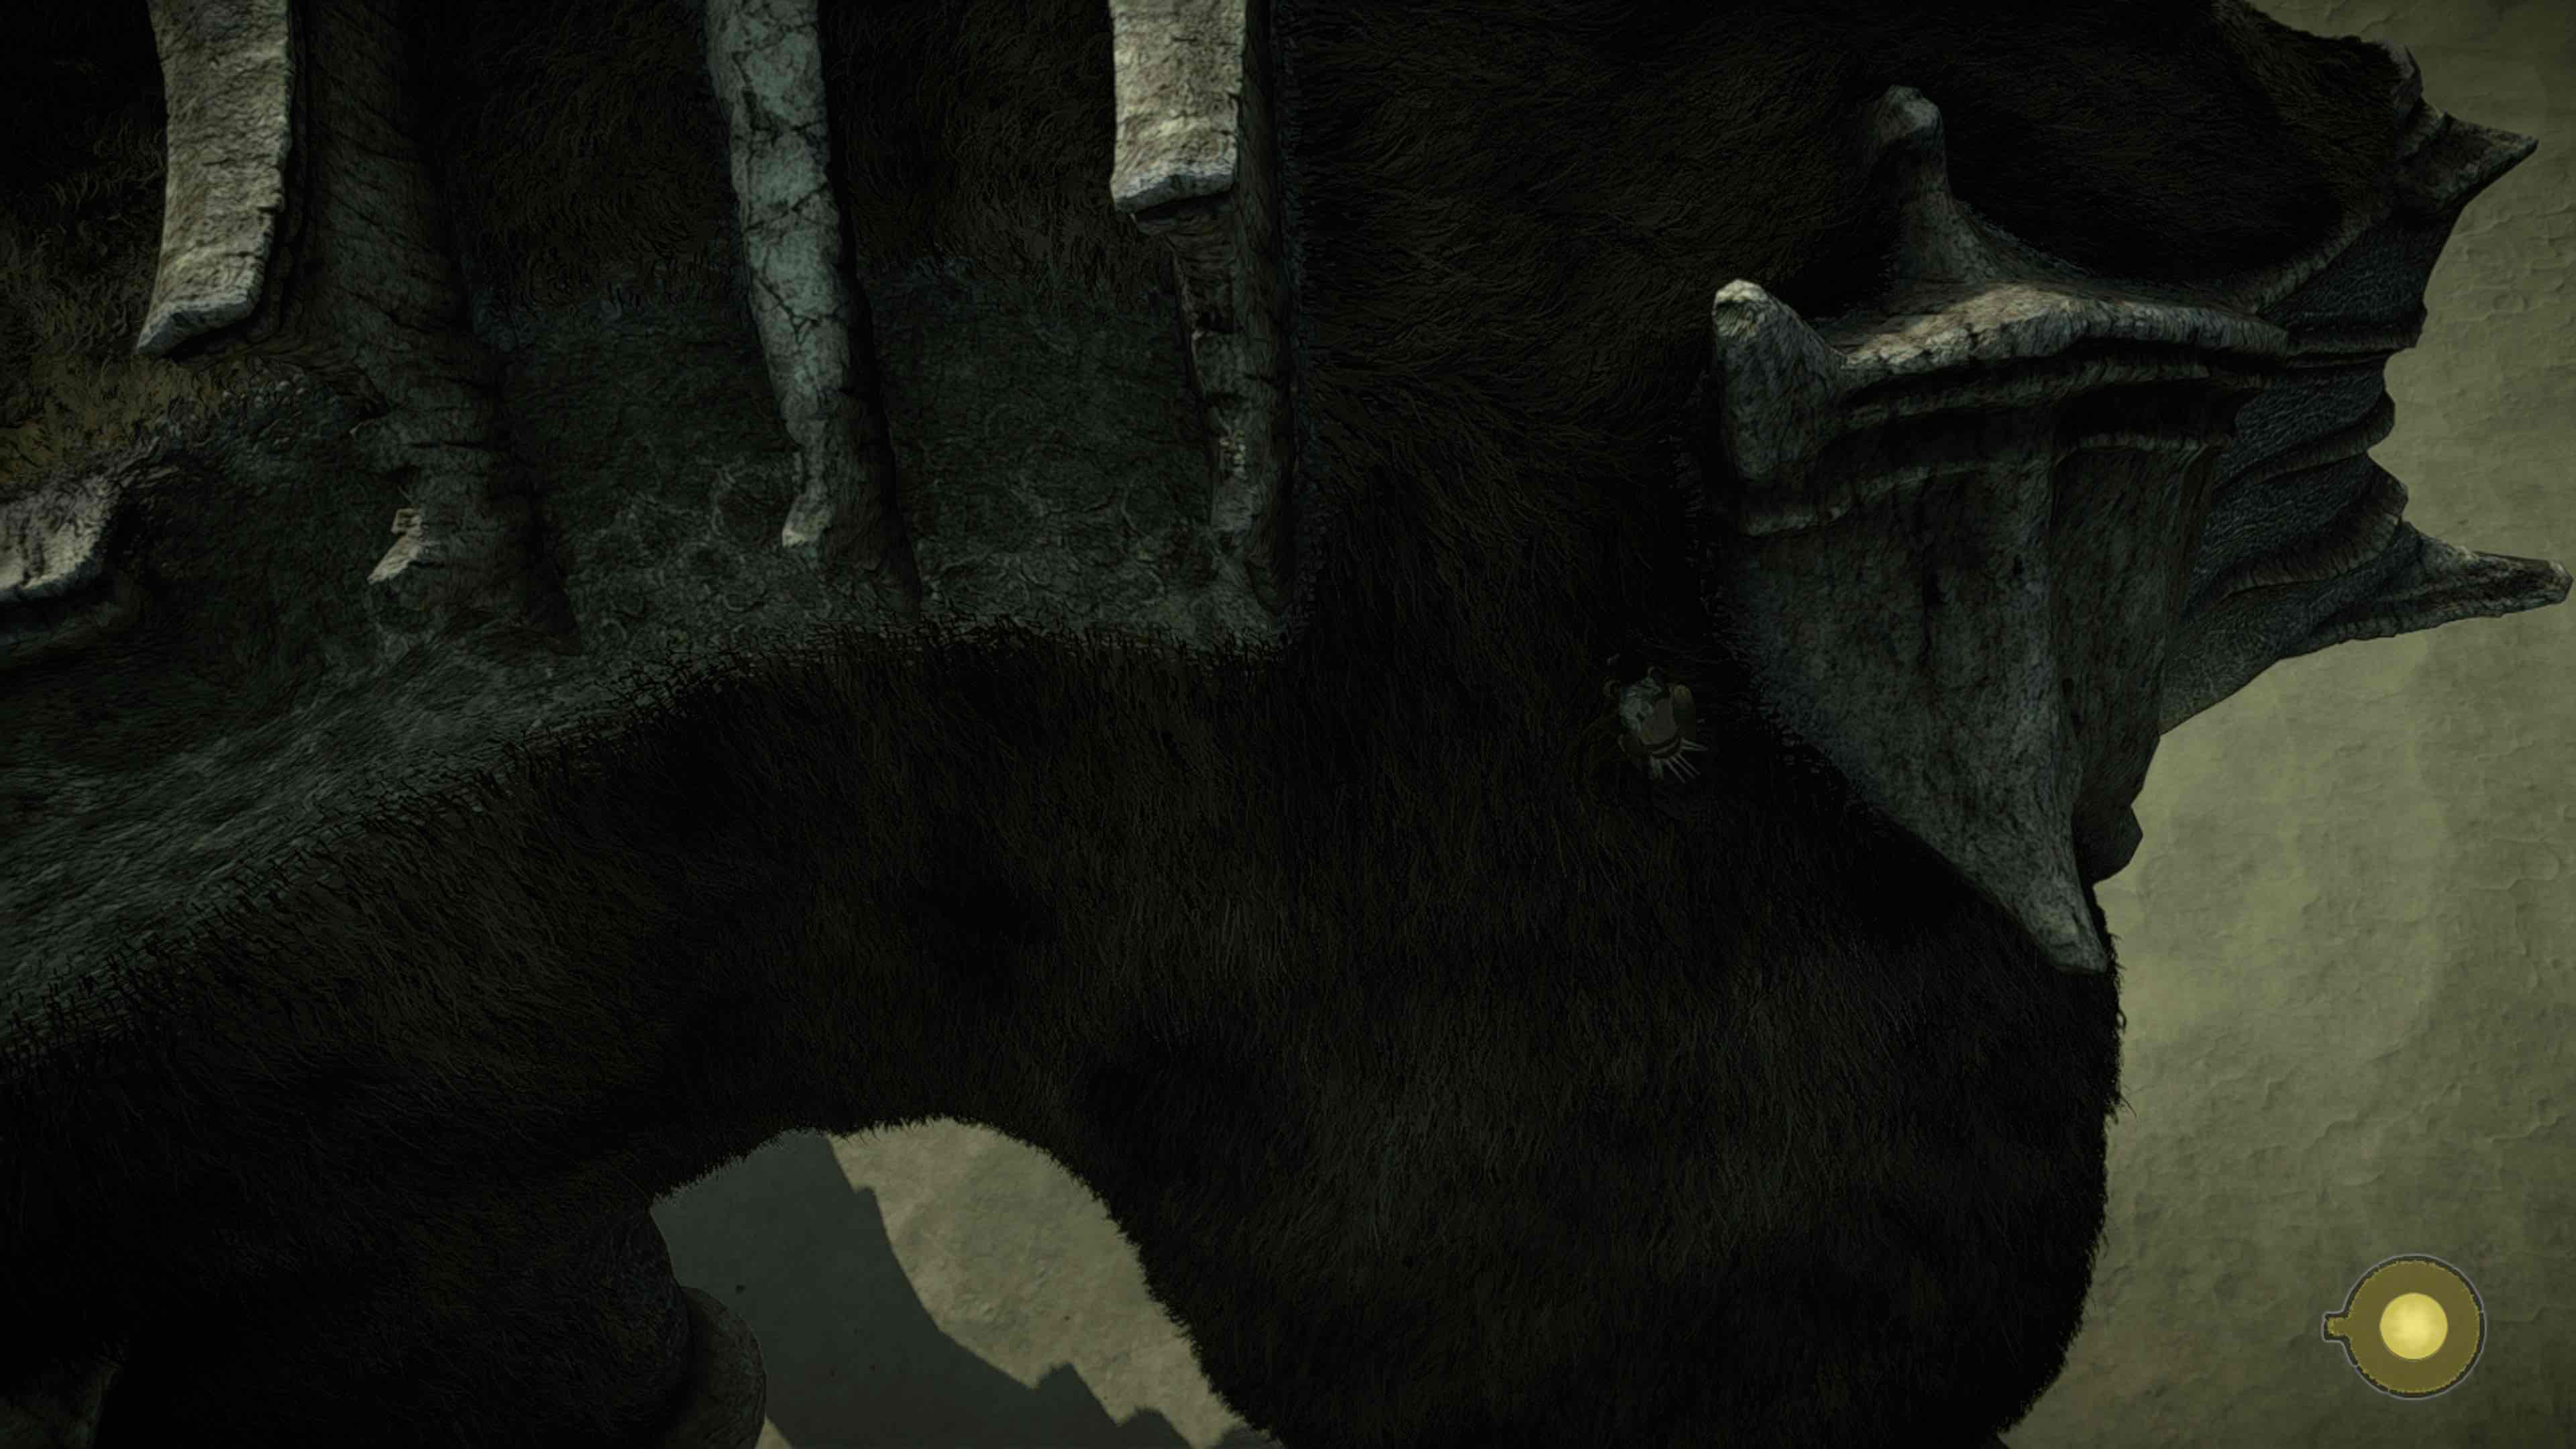 Shadow_of_the_Colossus_Coloso_2_2